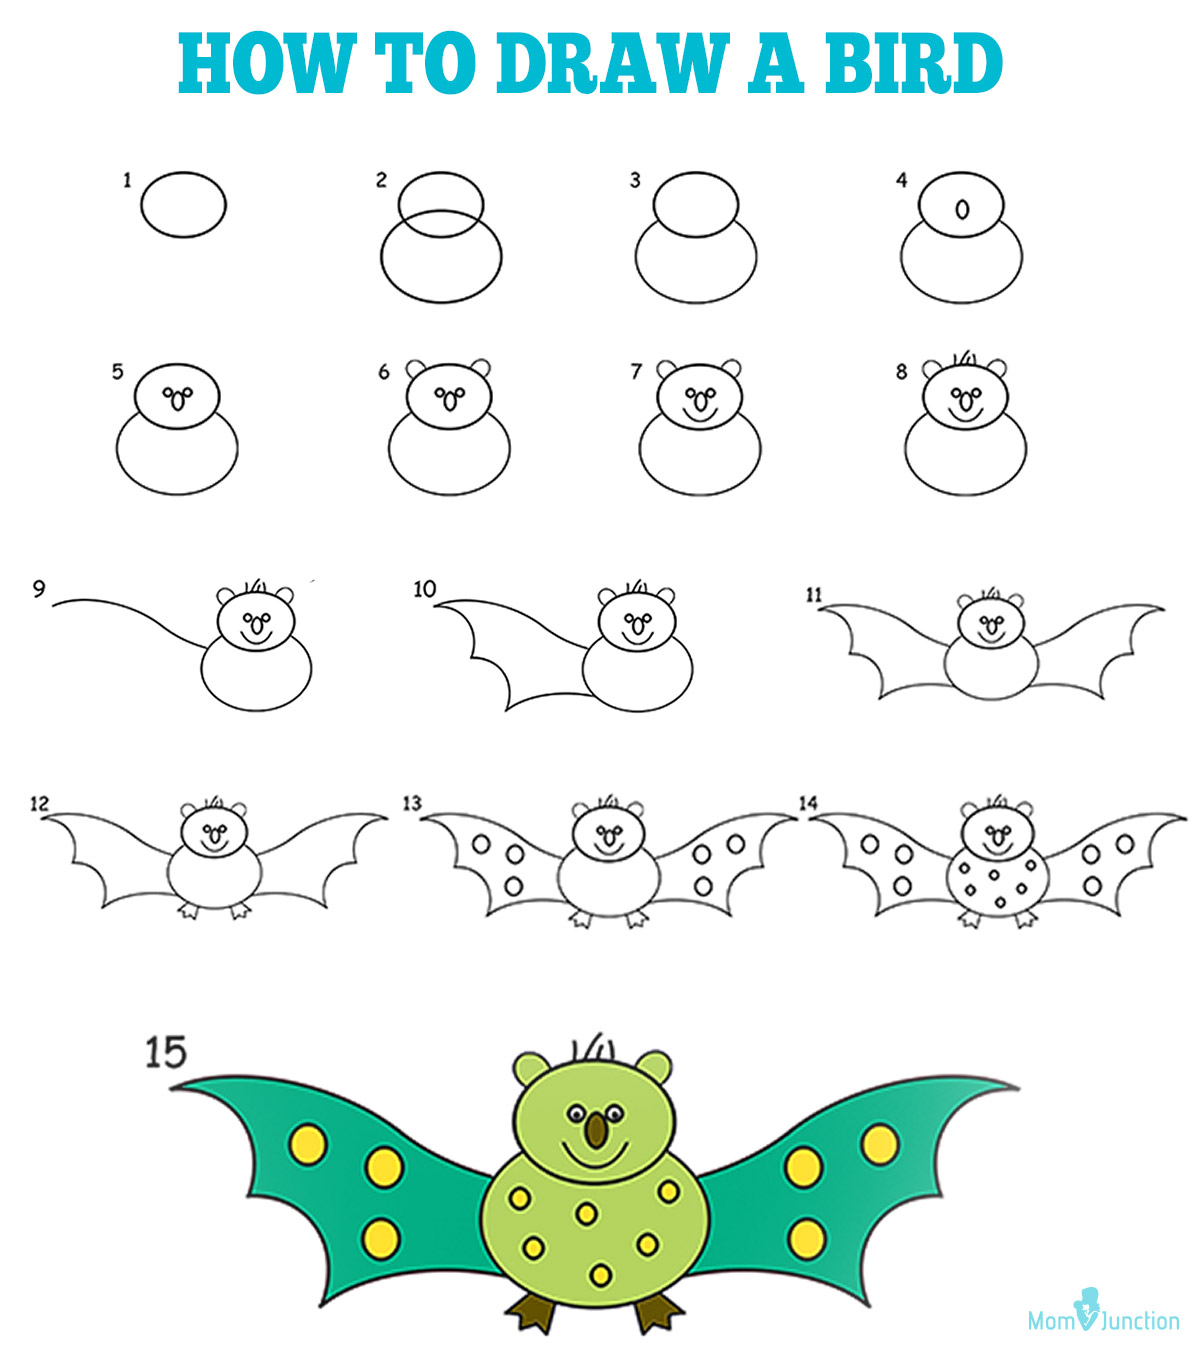 How to draw a bird for kids a step by step guide